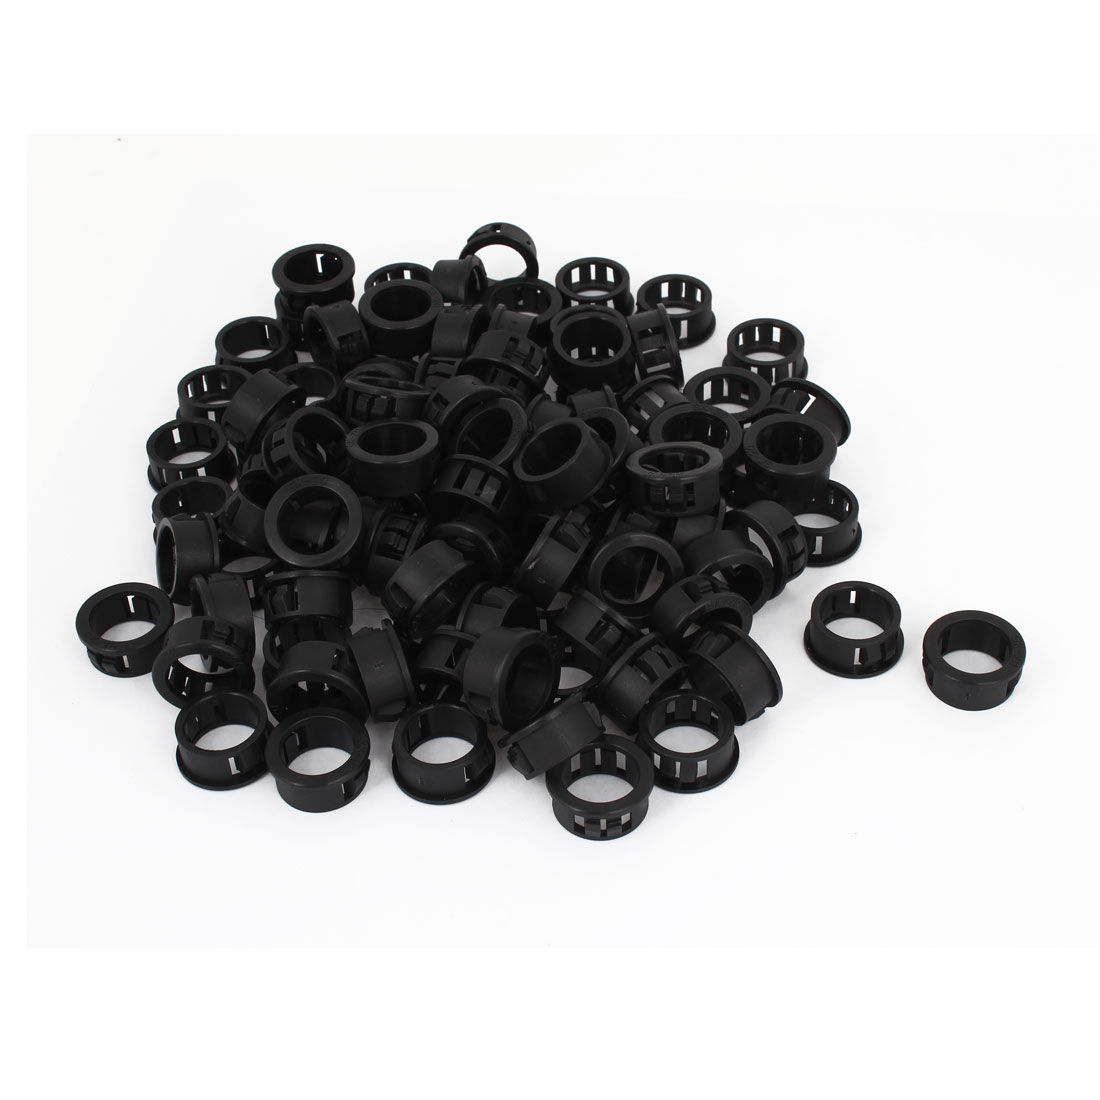 200 Pcs SKT-20 Snap in Mounting Locking Hole Button Cover 20mm x 22mm x 10mm